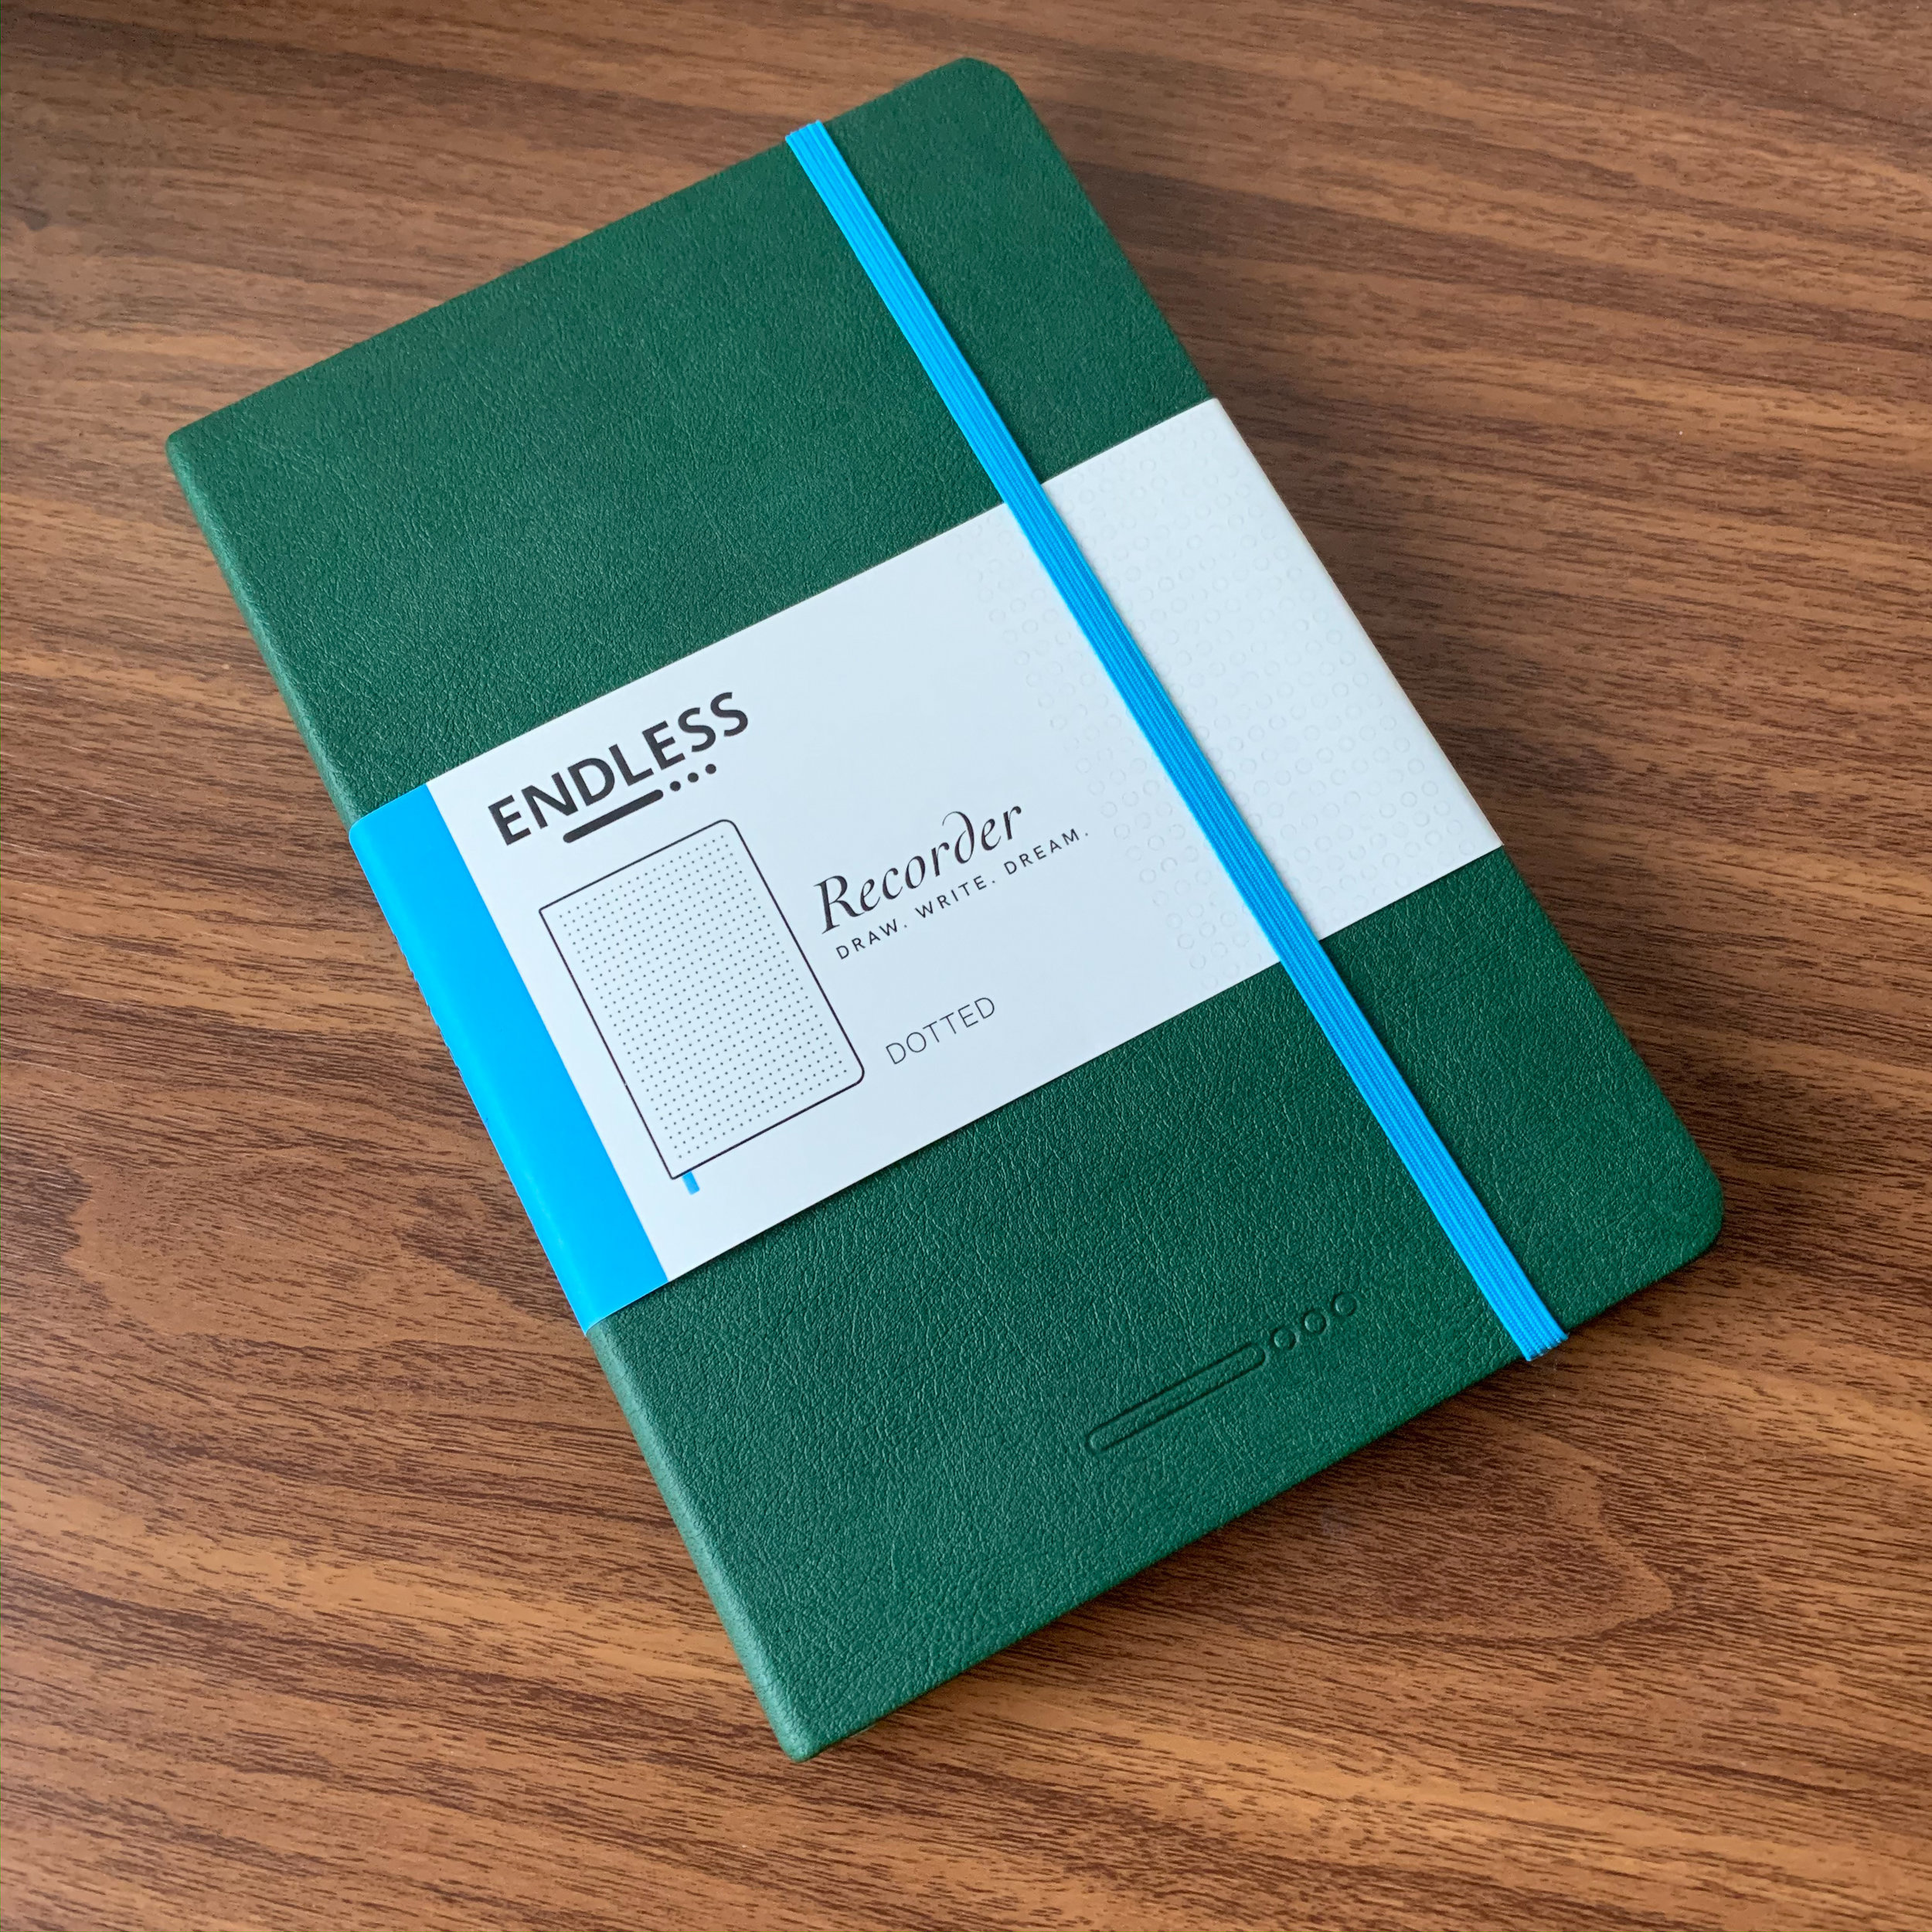 Endless-Recorder-Notebook